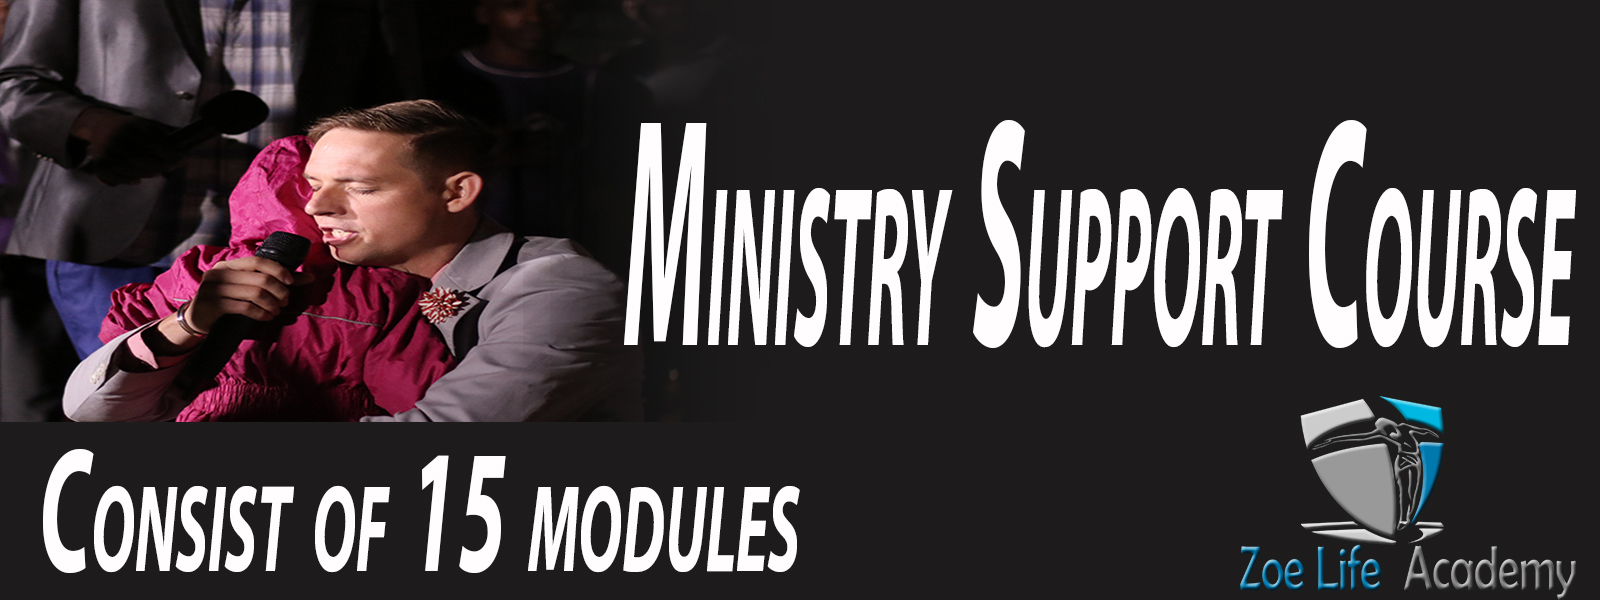 Ministry Support Course